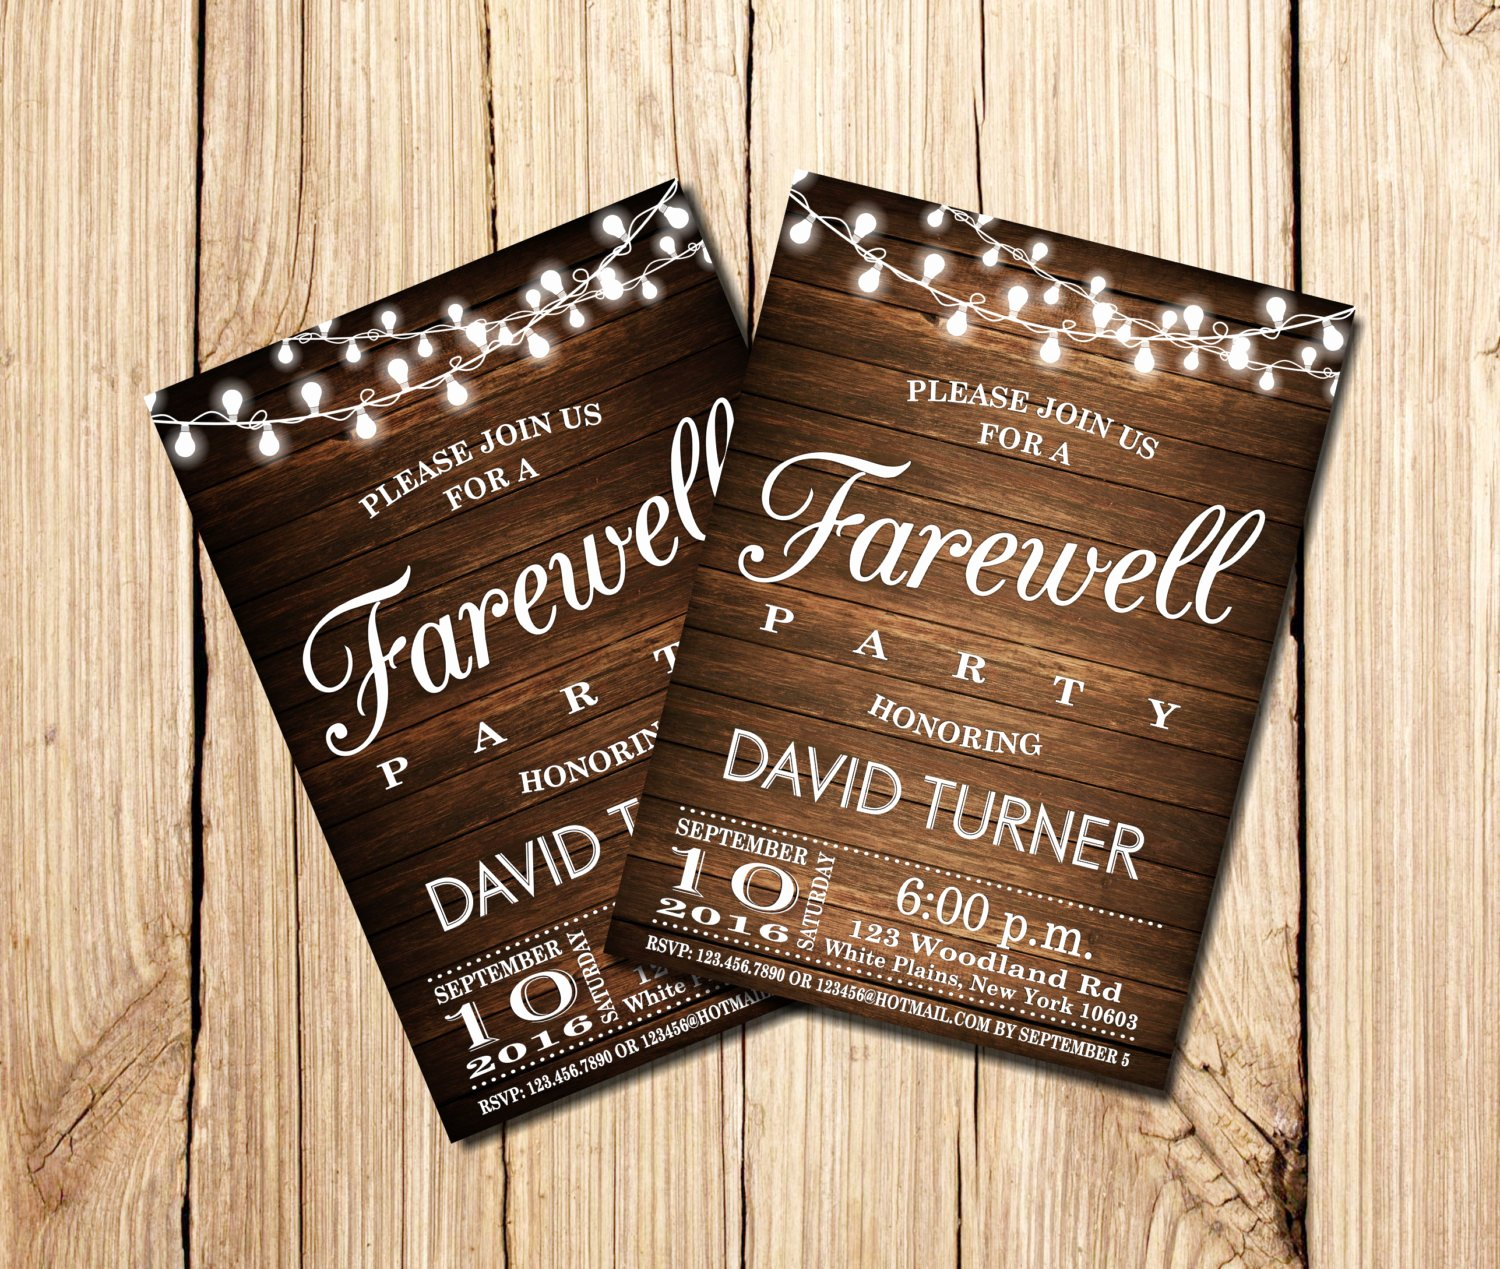 Farewell Party Invitations Templates Awesome Farewell Party Invitation Farewell Invitation Rustic